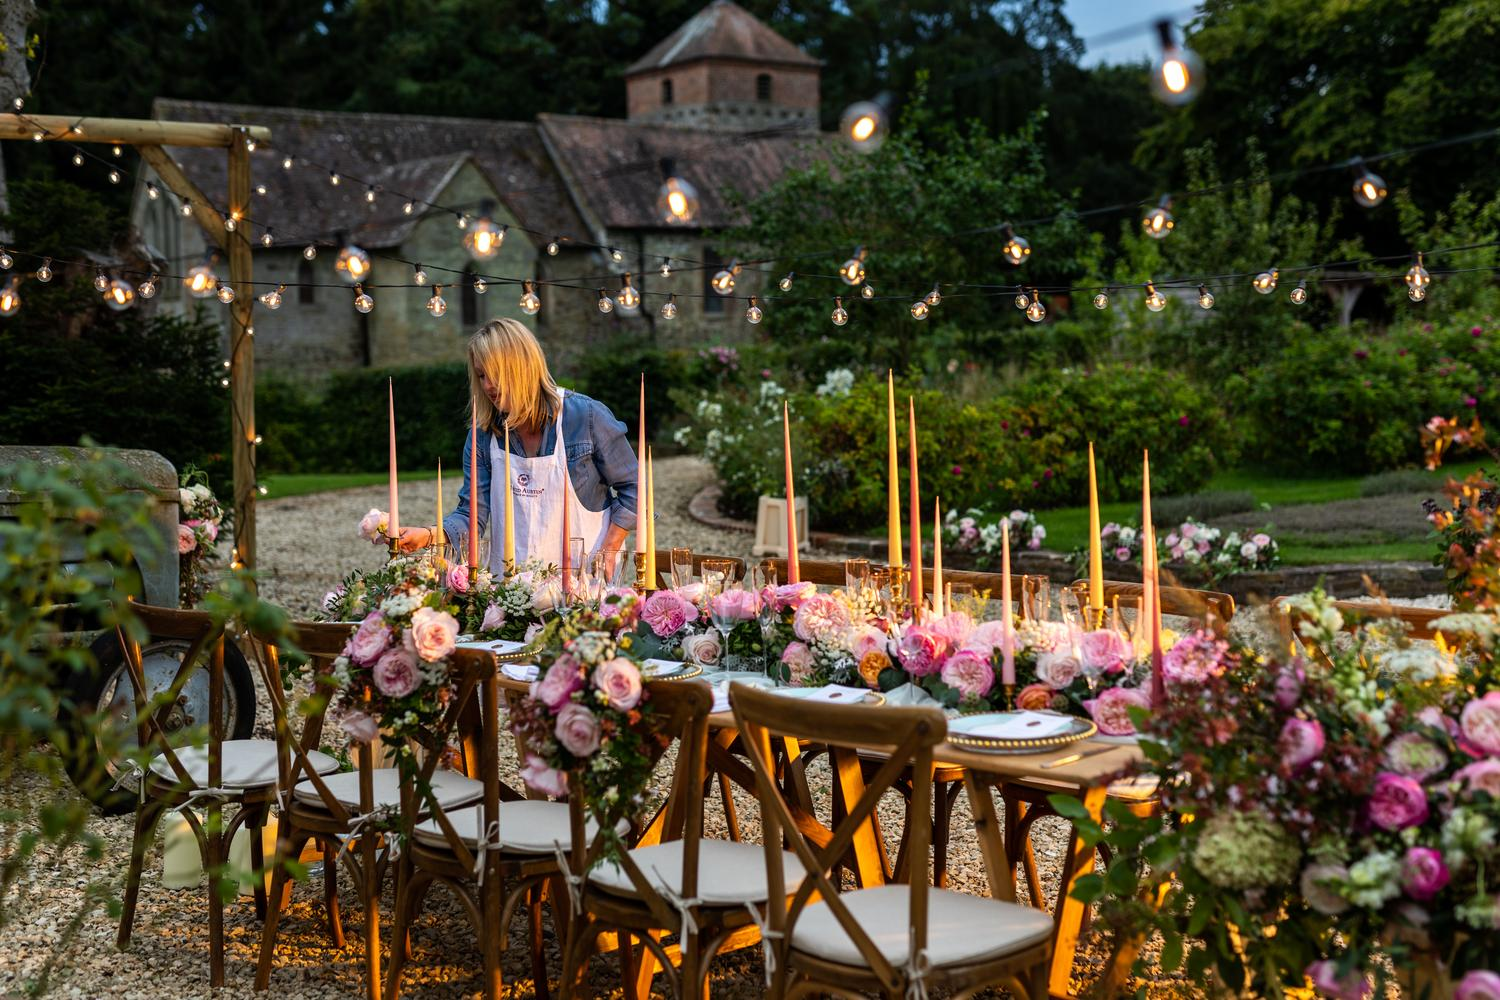 Outdoor Wedding Banquet Table Decorations